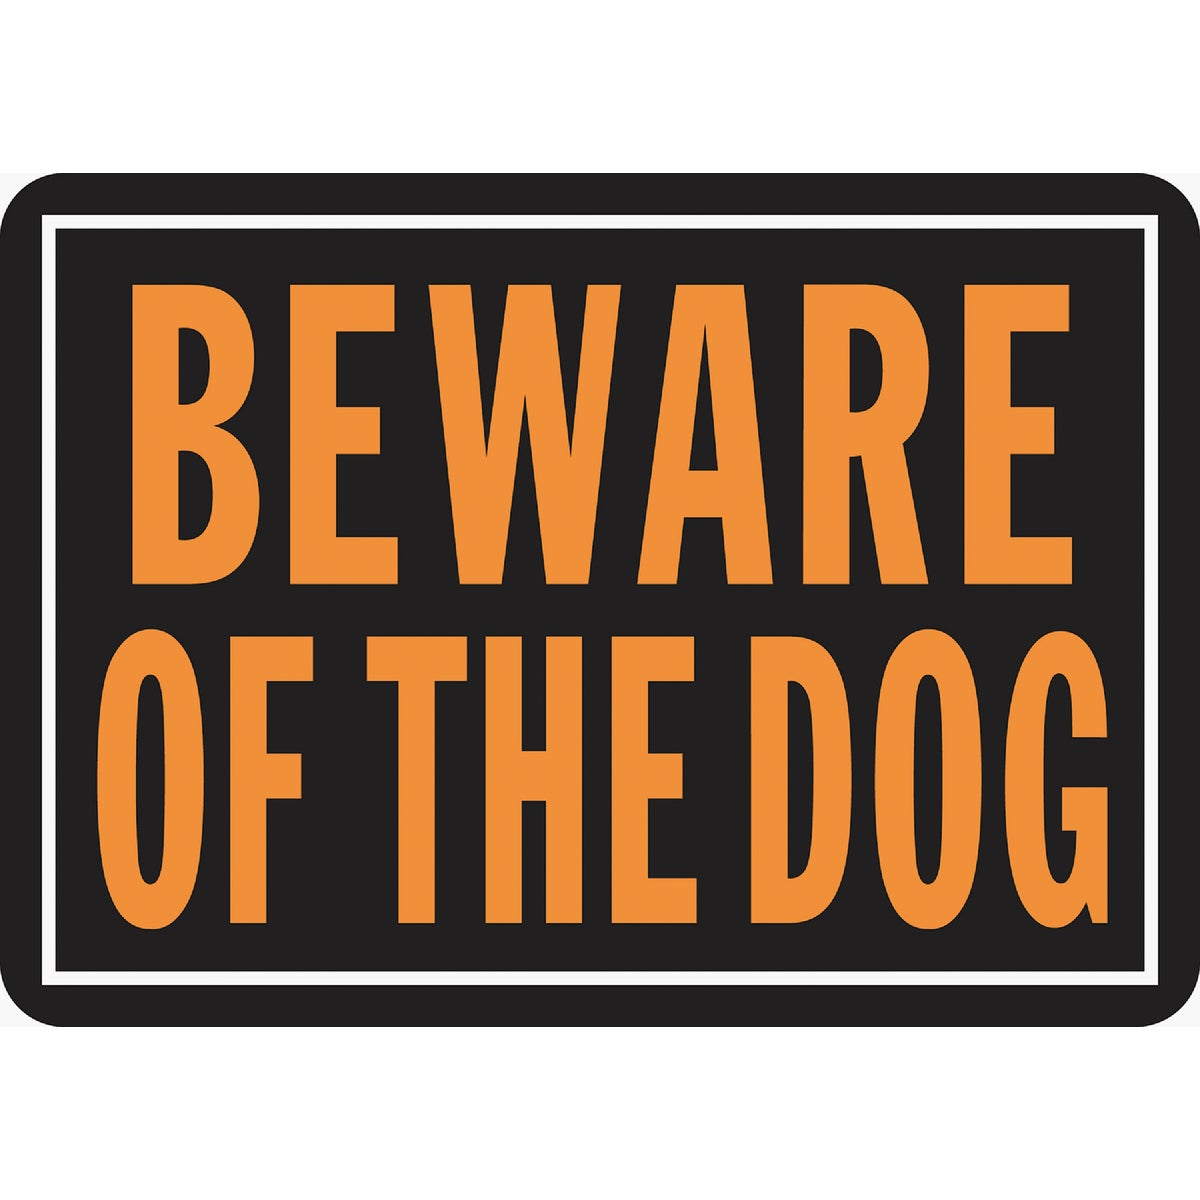 10X14 BEWARE OF DOG SIGN - 838 by Hy Ko Prods Co